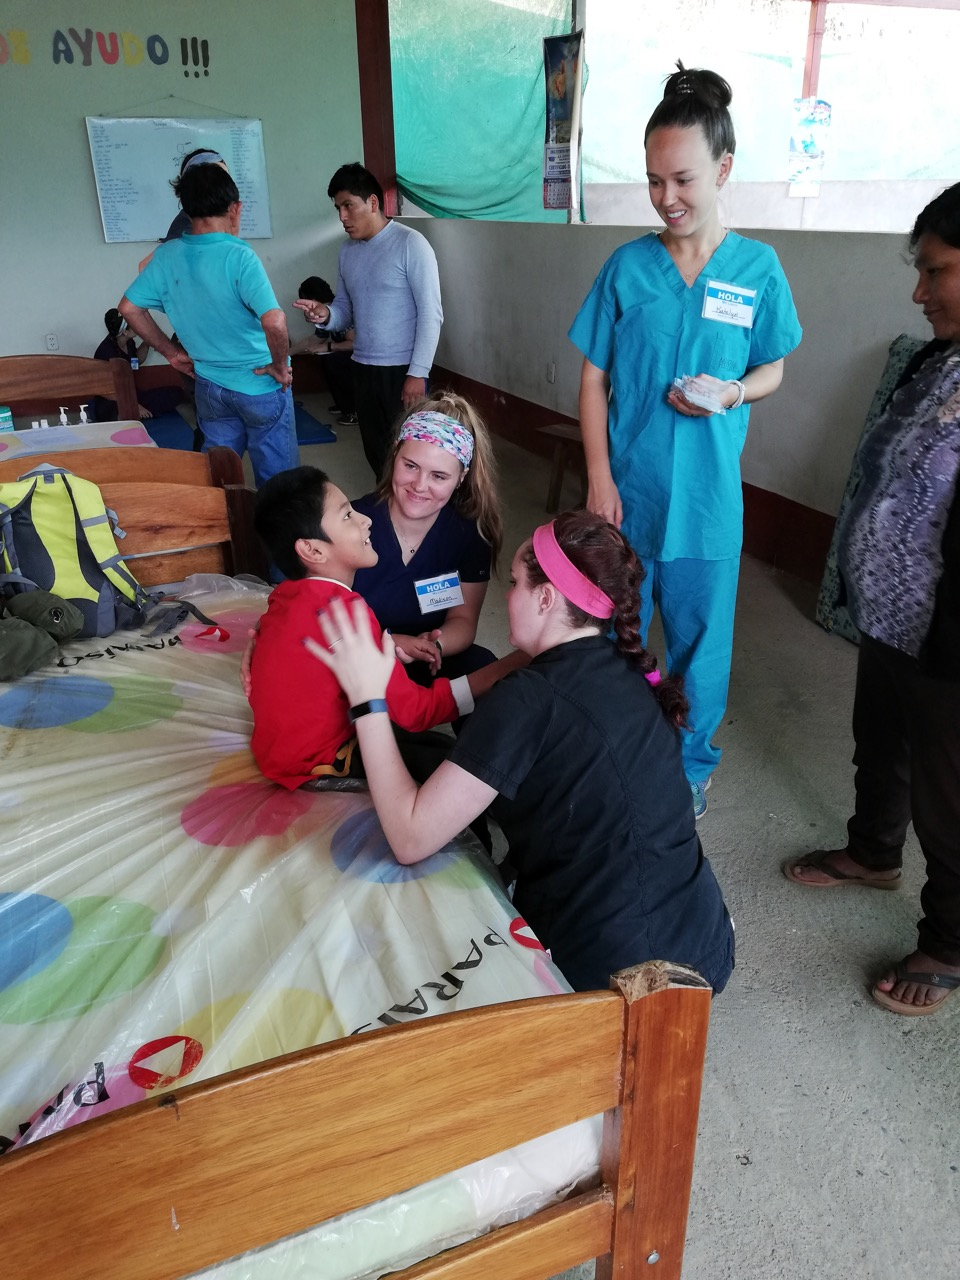 Physical therapists from the First Presbyterian Church Bryan medical team work with community members. San Martín, Peru